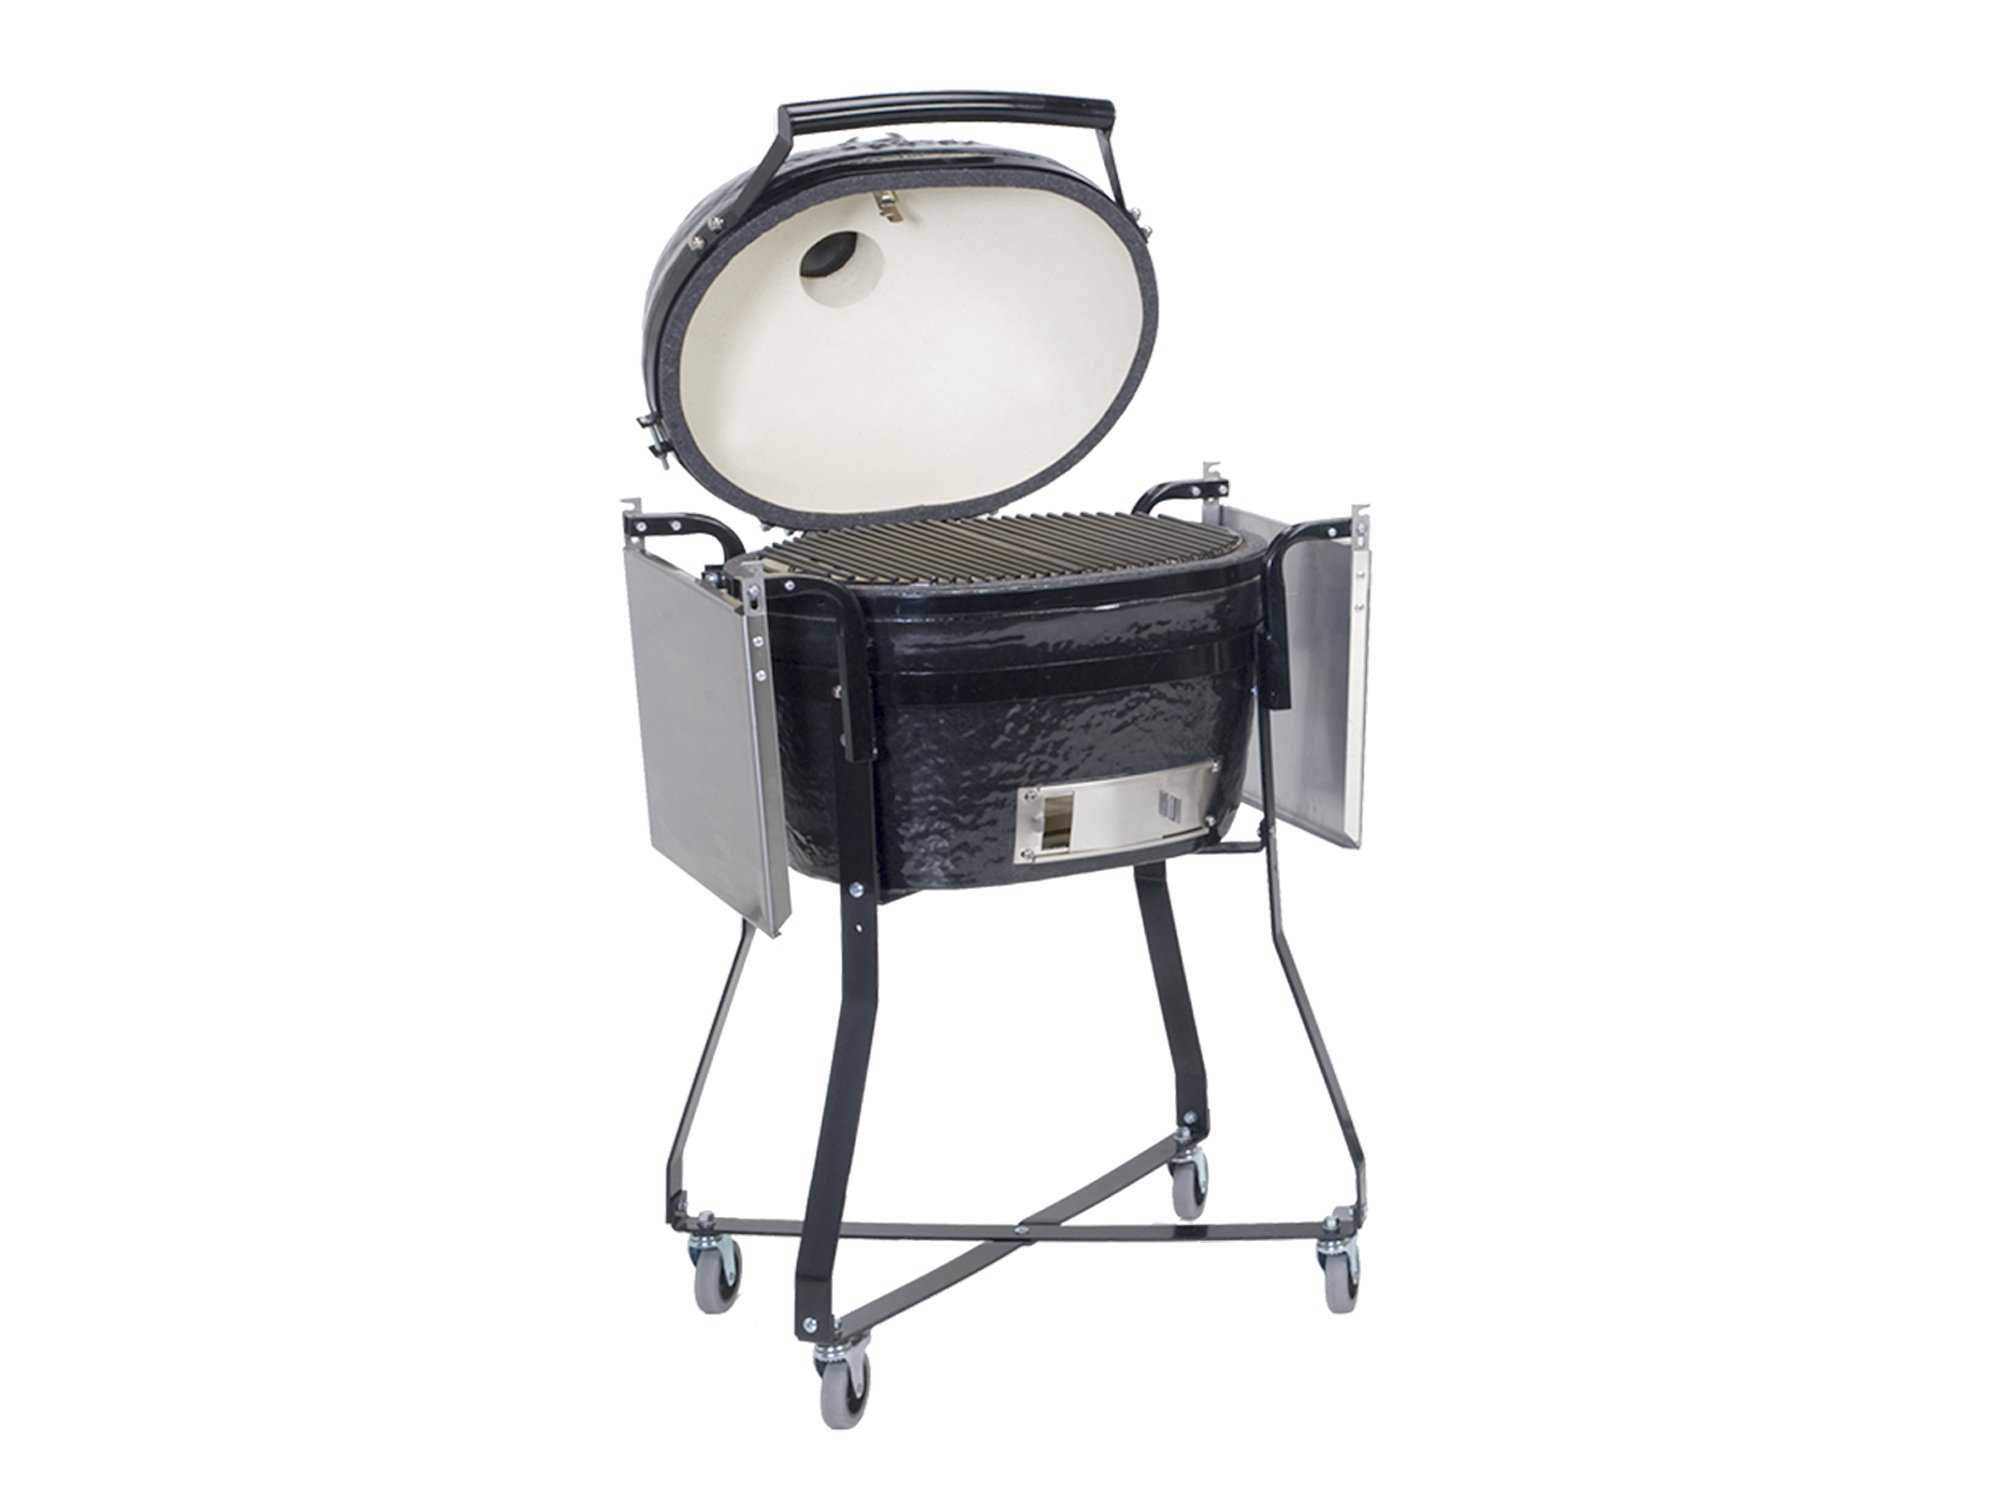 Primo Oval (200) Jr Ceramic Smoker Grill In Caddie With